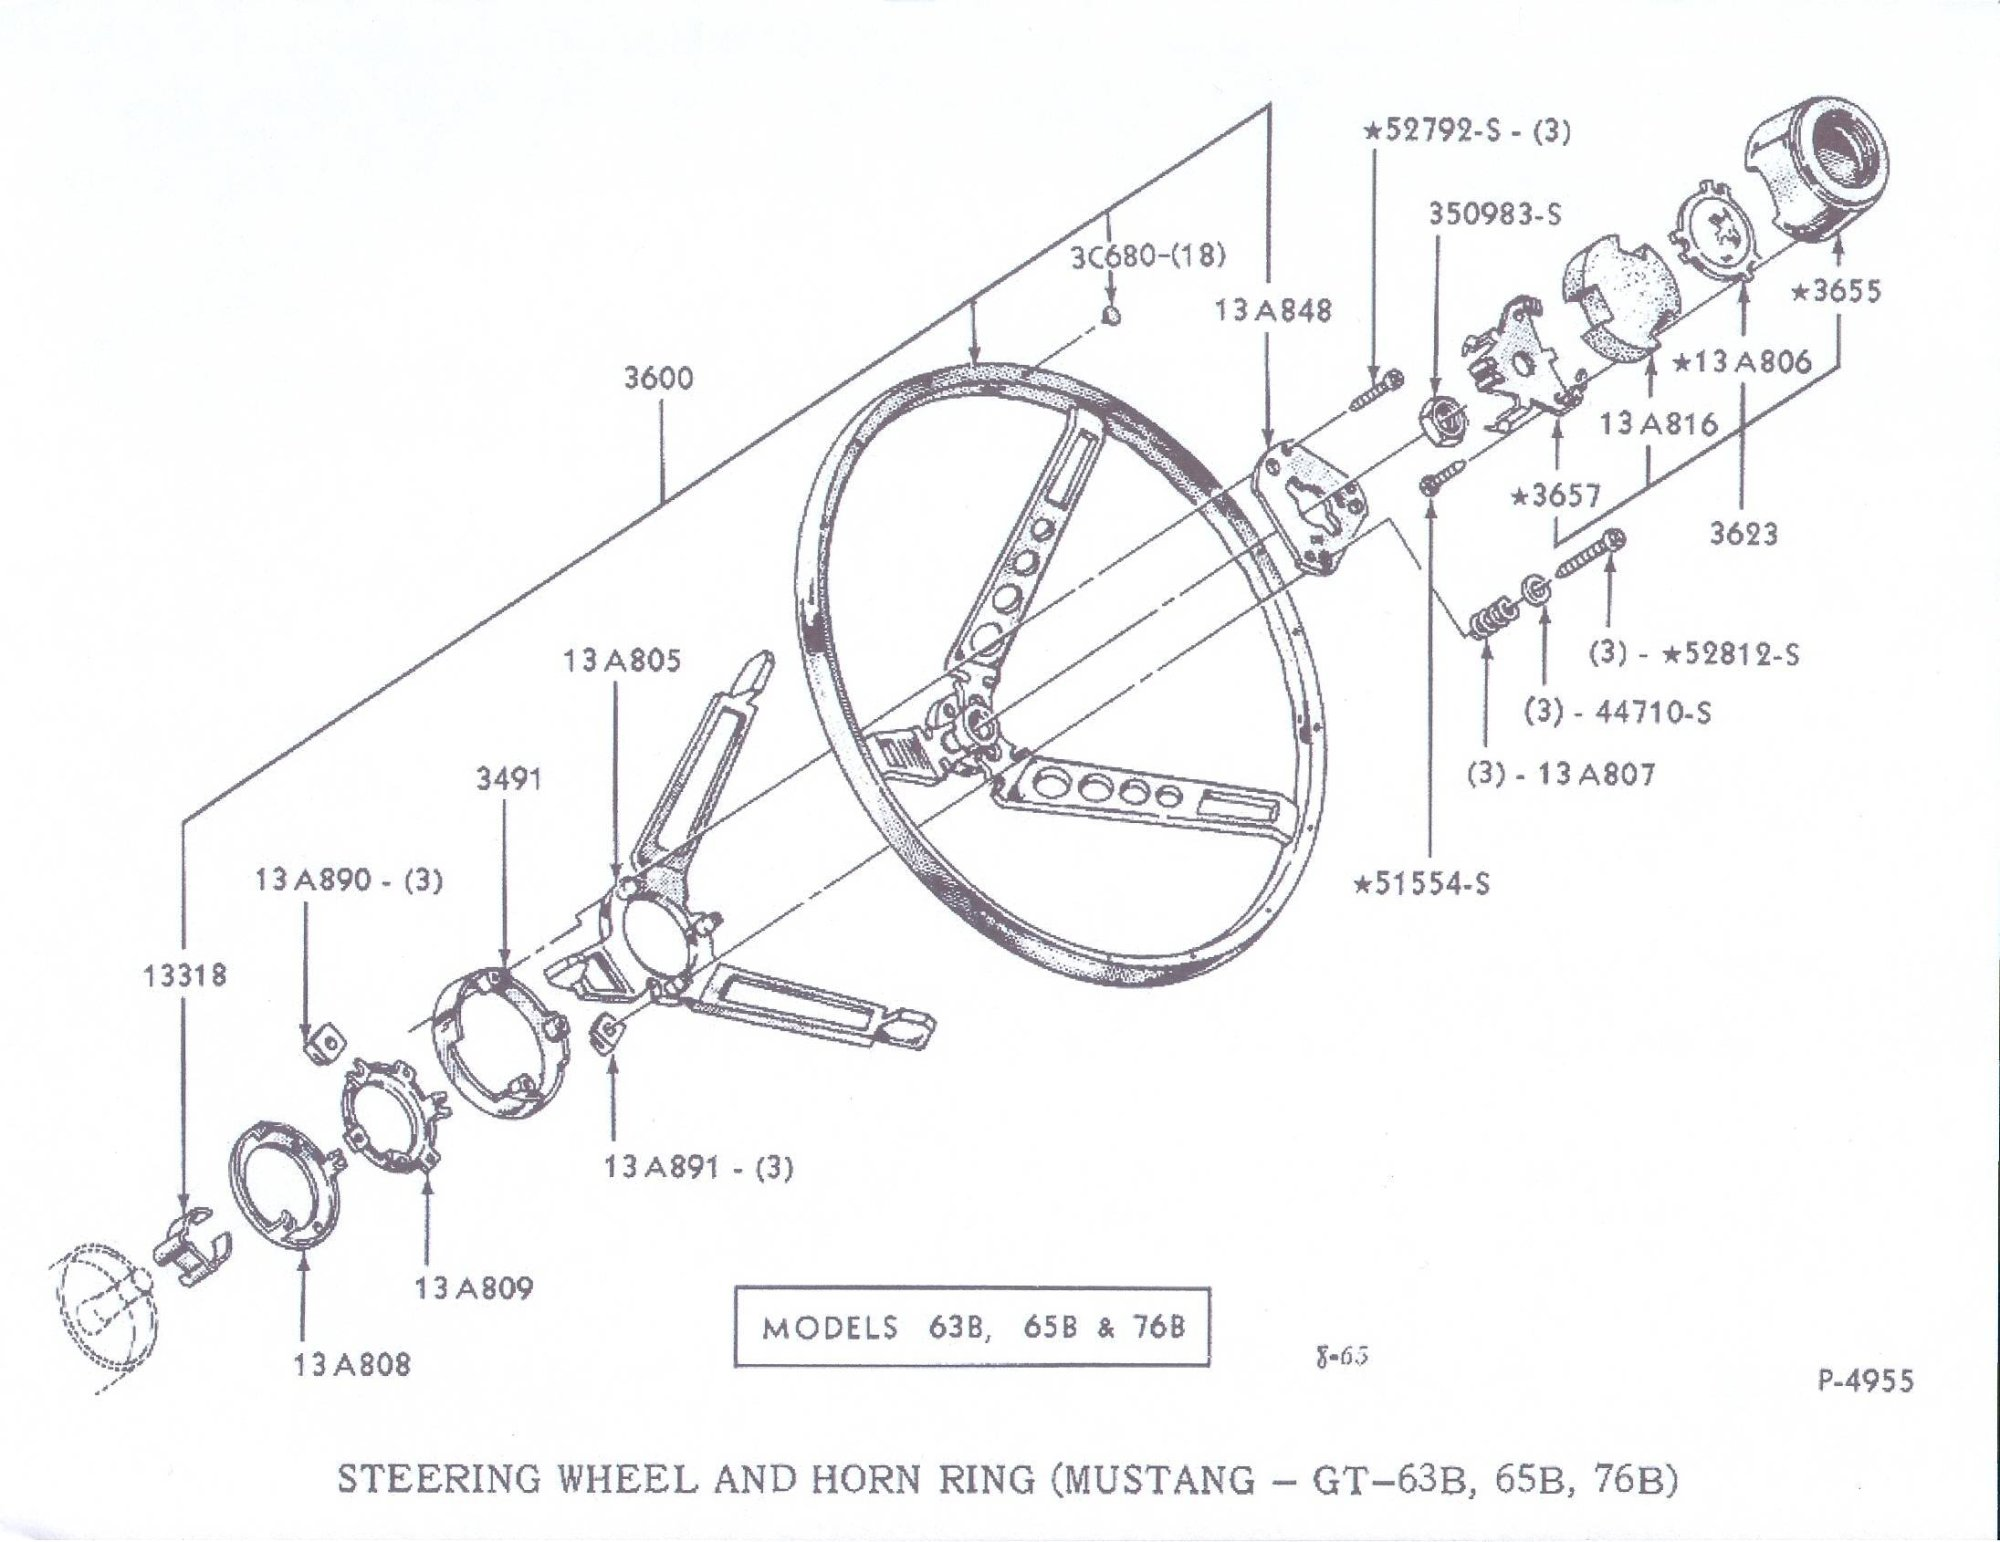 hight resolution of 1965 ford mustang horn diagram schematics wiring diagrams u2022 rh seniorlivinguniversity co 1965 mustang steering column